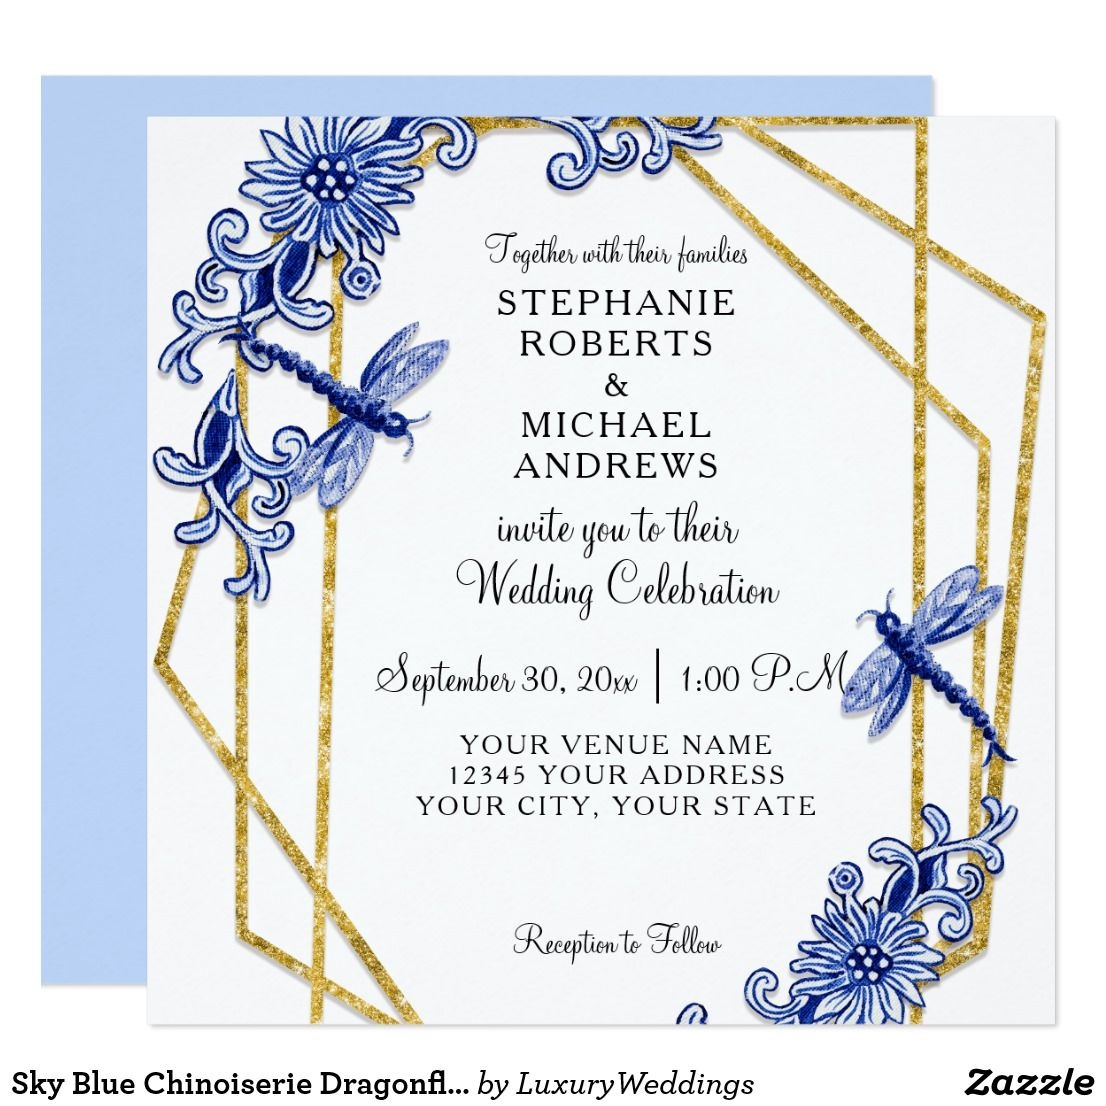 Sky Blue Chinoiserie Dragonfly Floral Watercolor Invitation